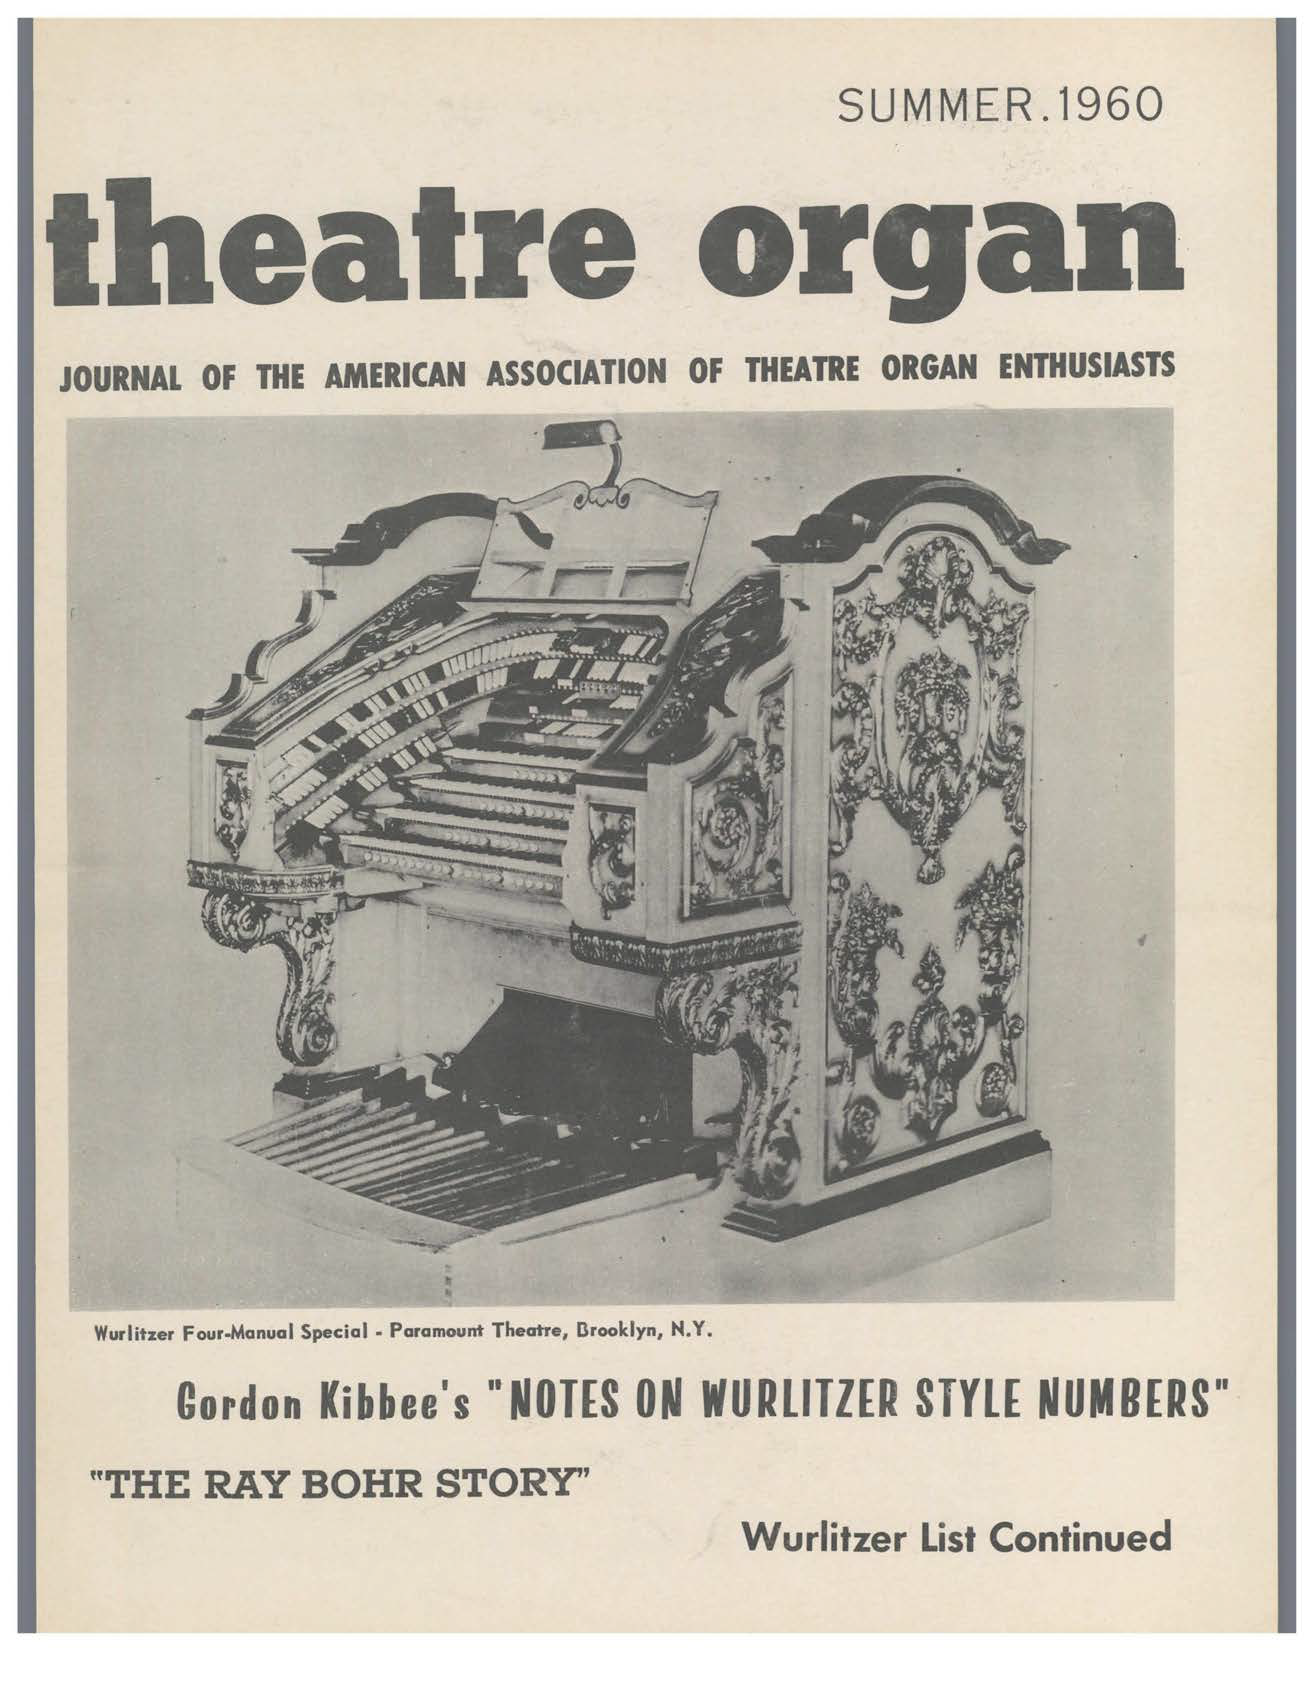 Theatre Organ, Summer 1960, Volume 2, Number 2